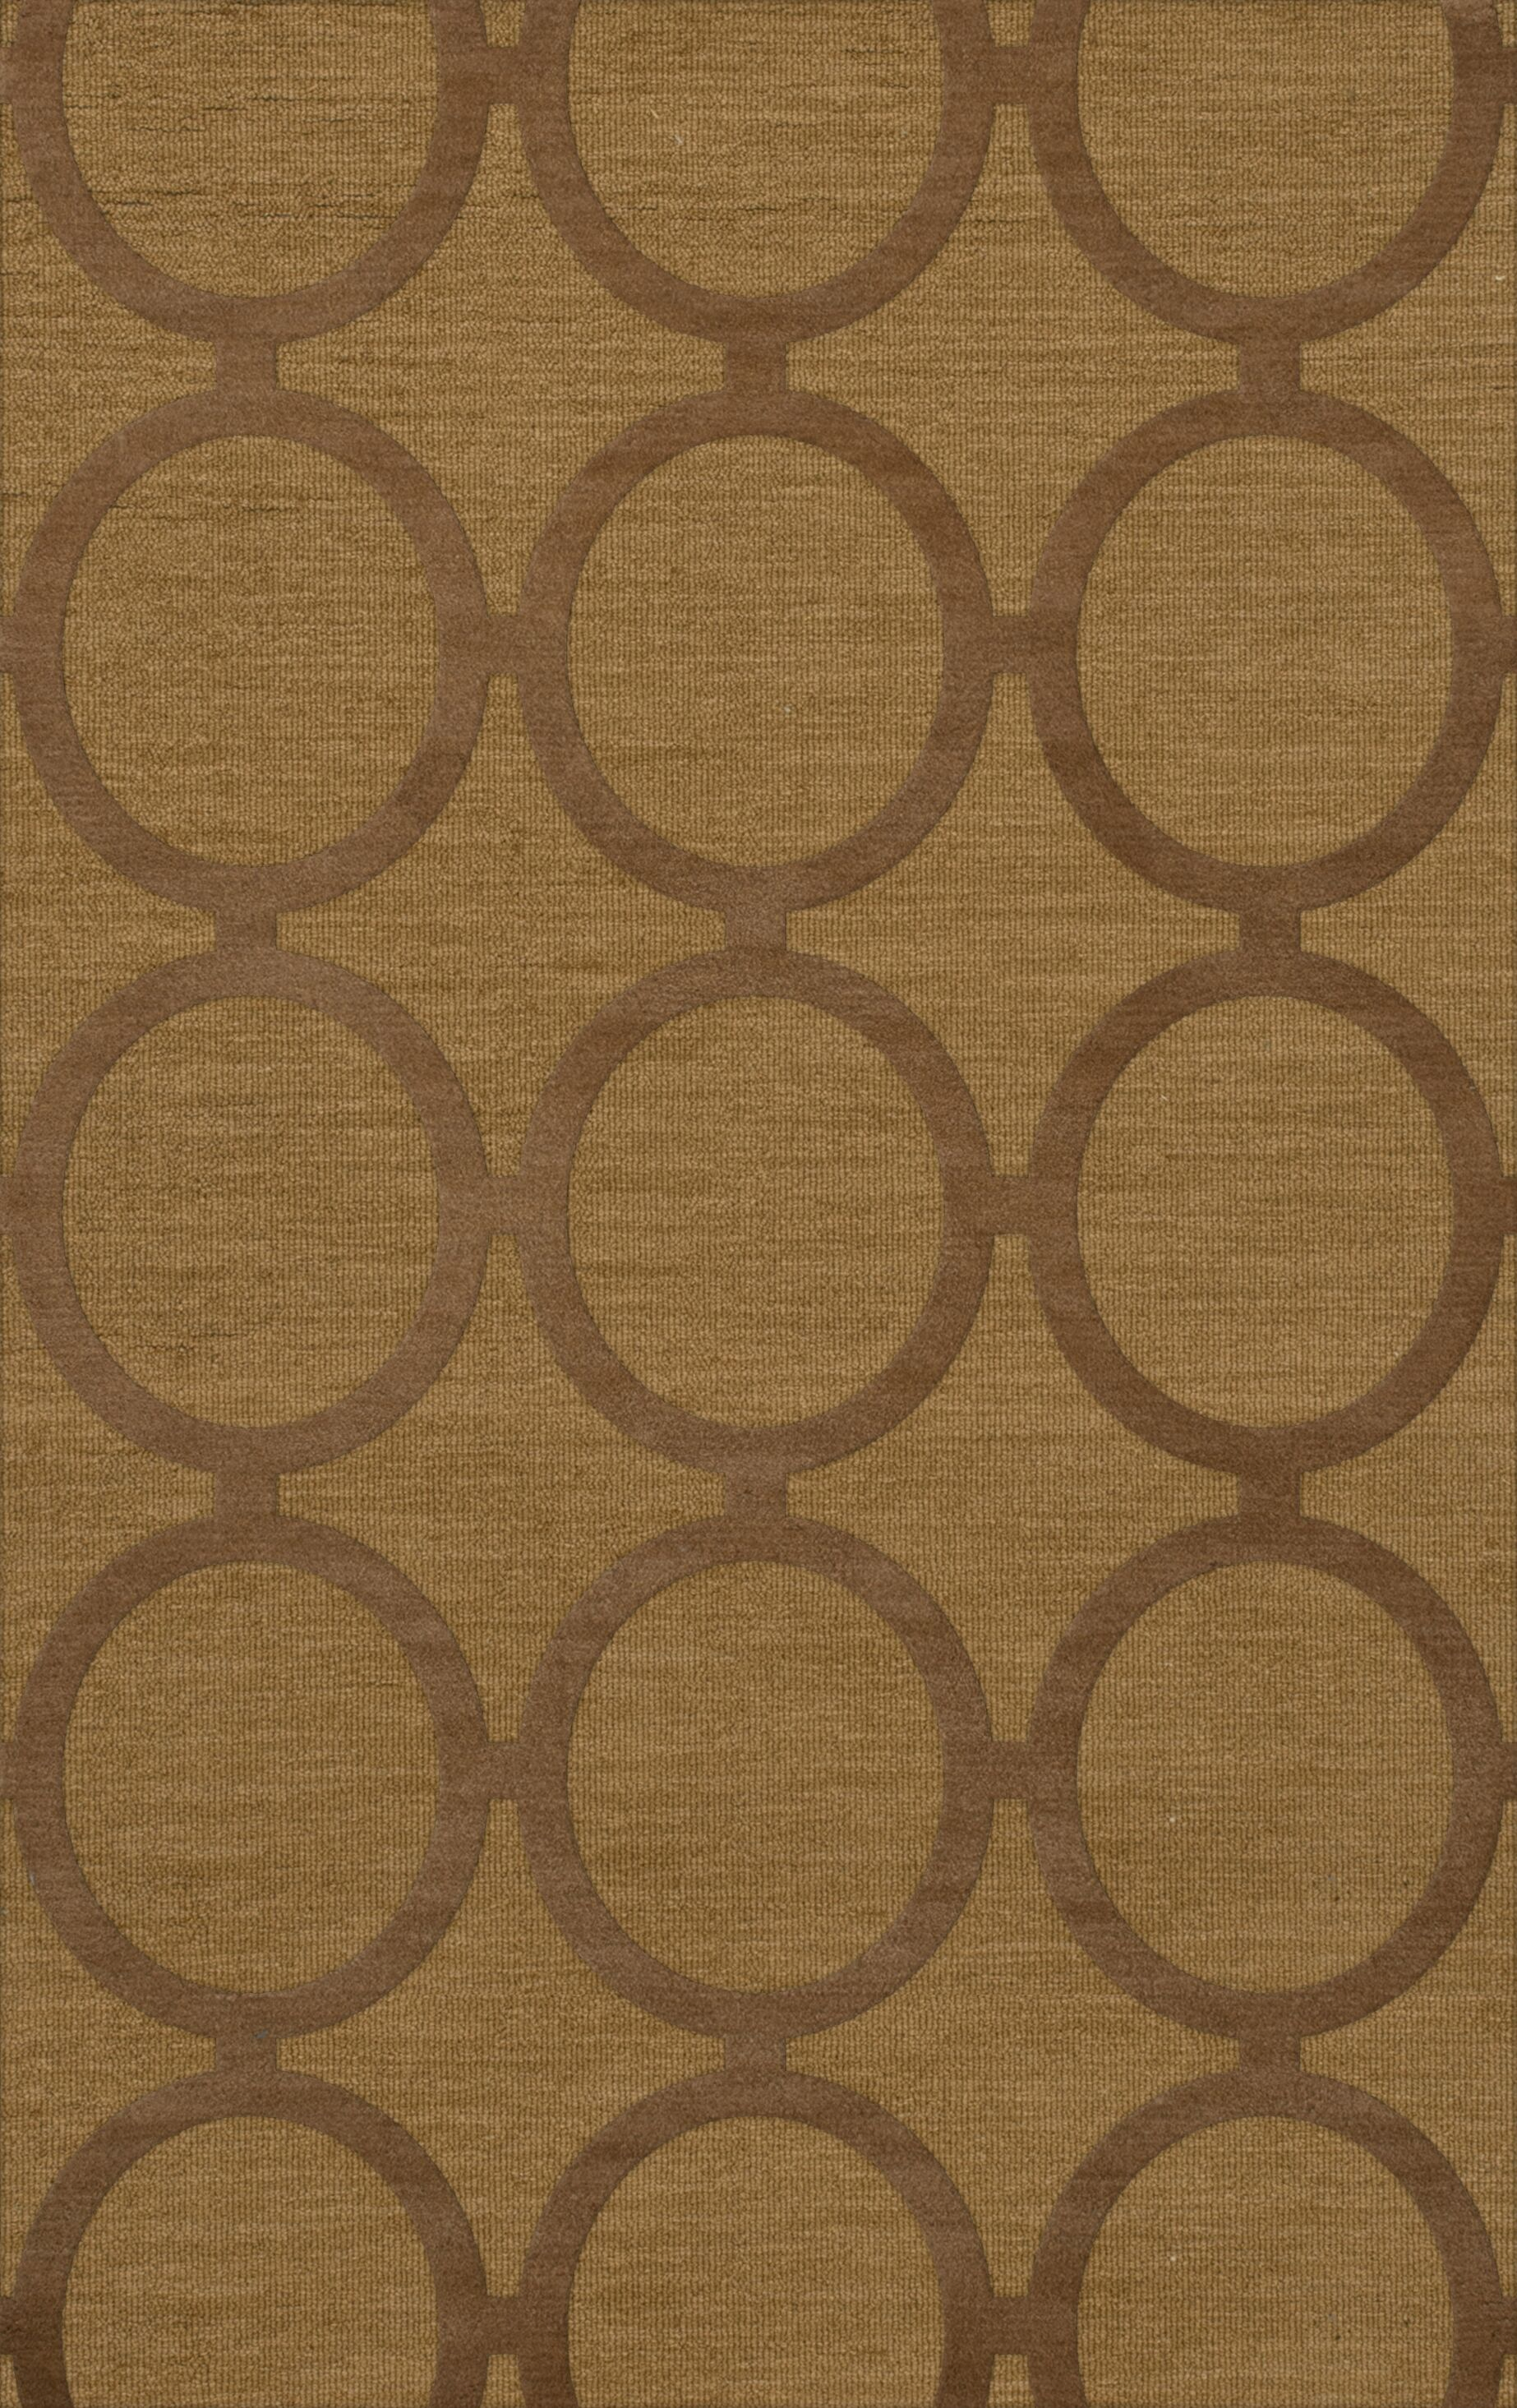 Dover Tufted Wool Gold Dust Area Rug Rug Size: Rectangle 5' x 8'